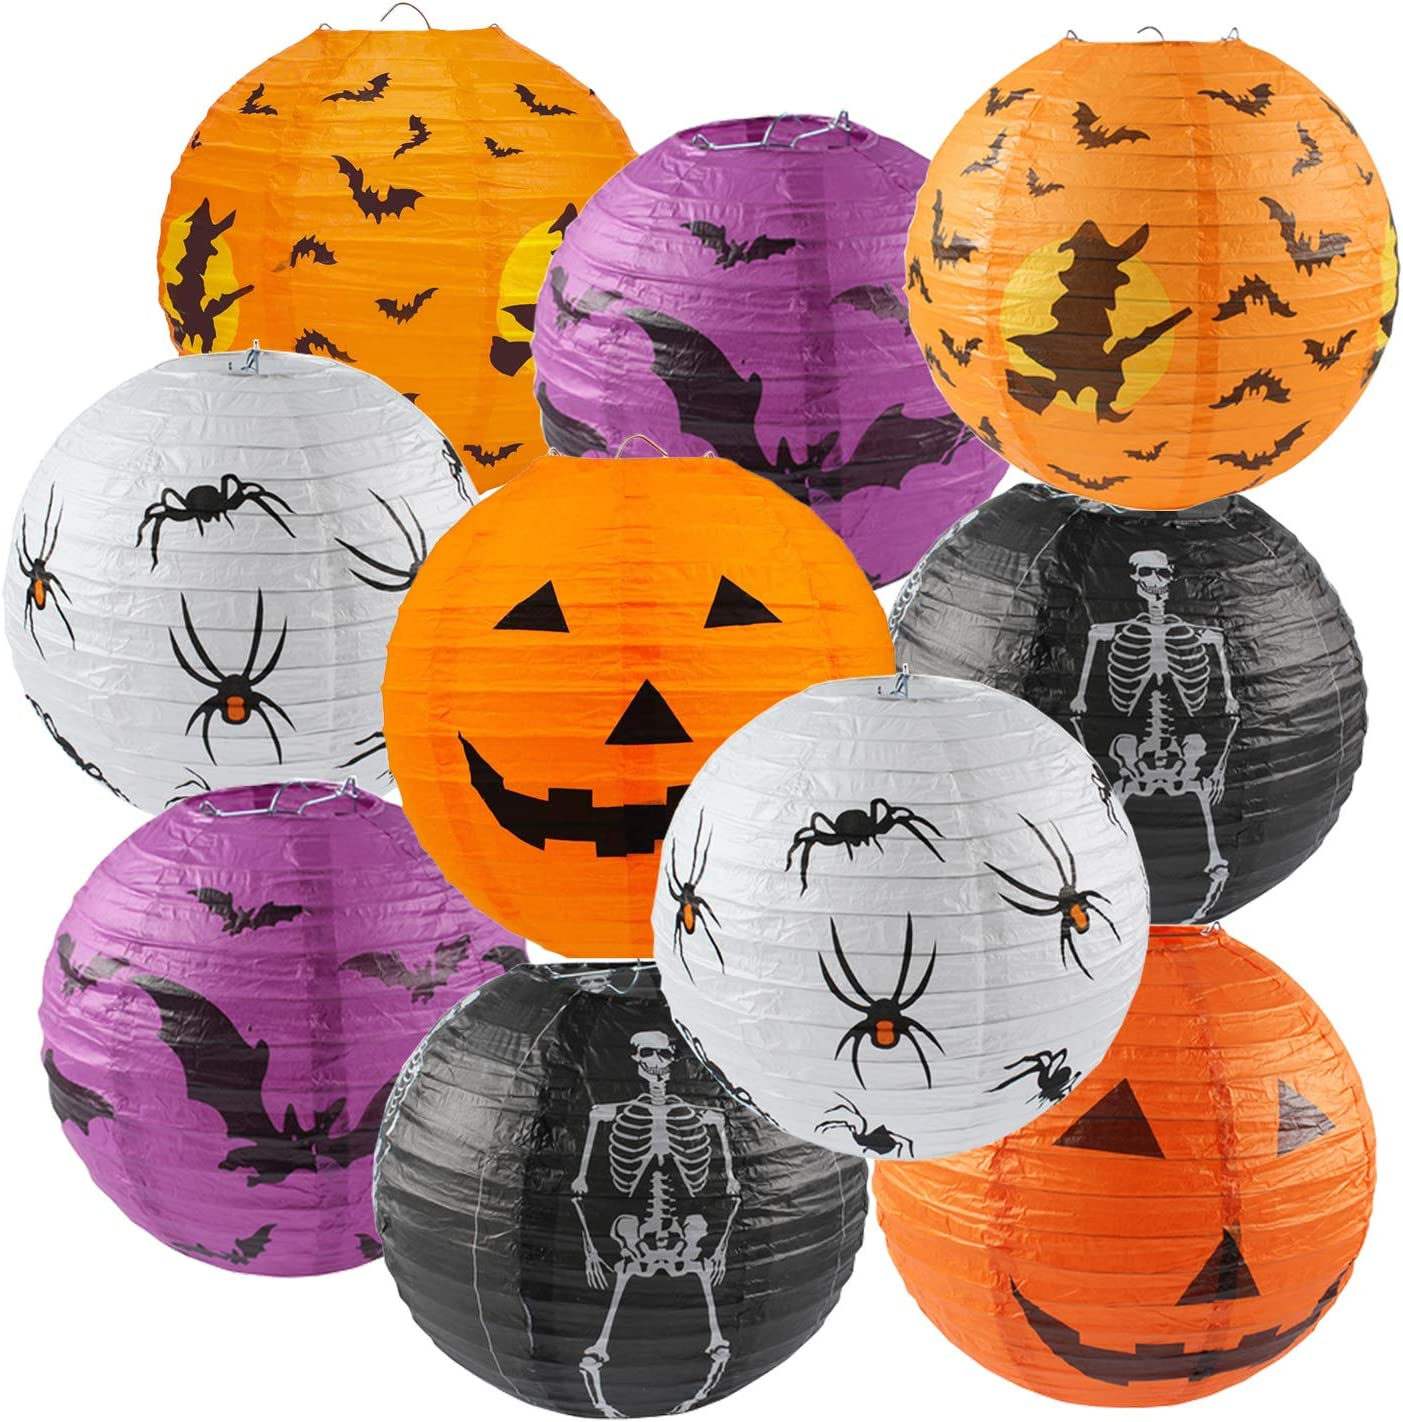 10PCS Halloween Paper Lanterns, Hanging Jack-O'-Lantern Spider Skeleton Pumpkin for Halloween Party Decor, Indoor & Outdoor Spooky Home Decor - 10 Inches